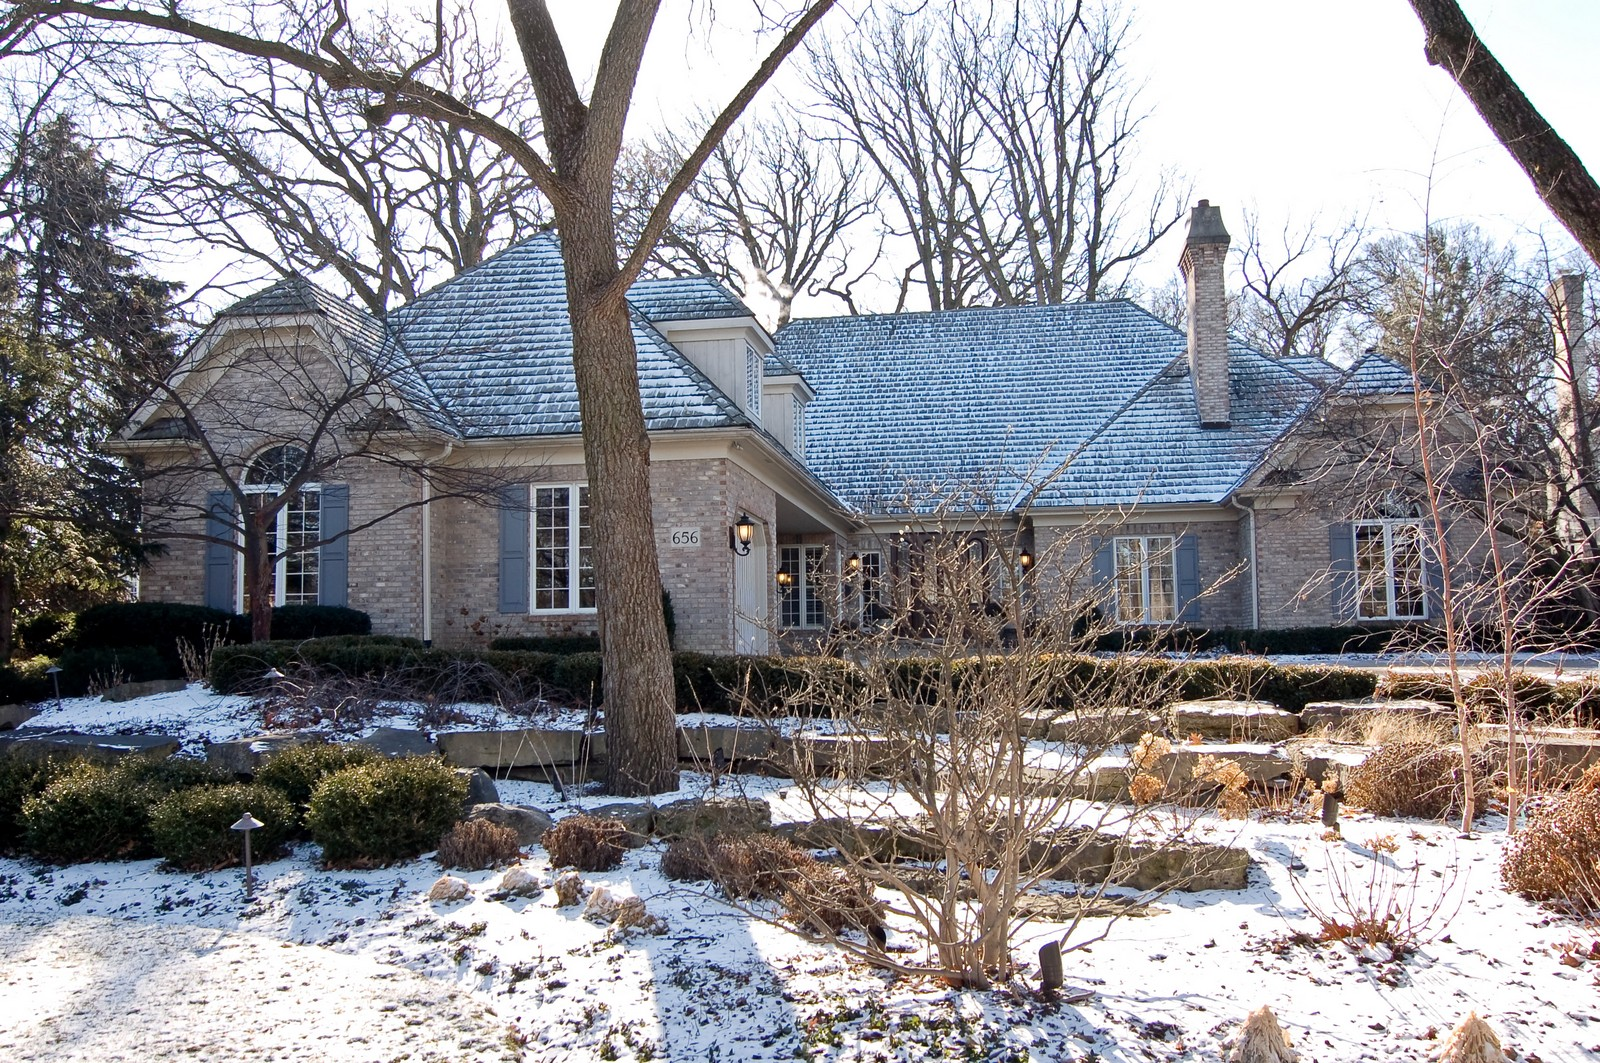 Real Estate Photography - 656 E 6th St, Hinsdale, IL, 60521 - Front View